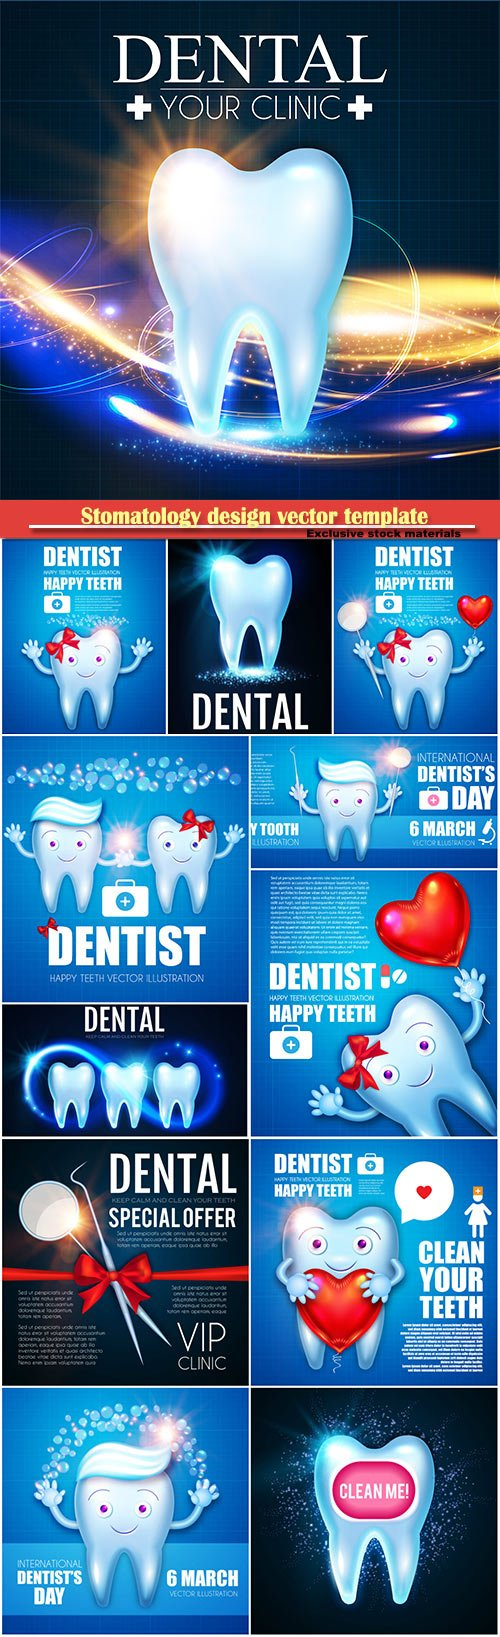 Stomatology design vector template, dental health concept